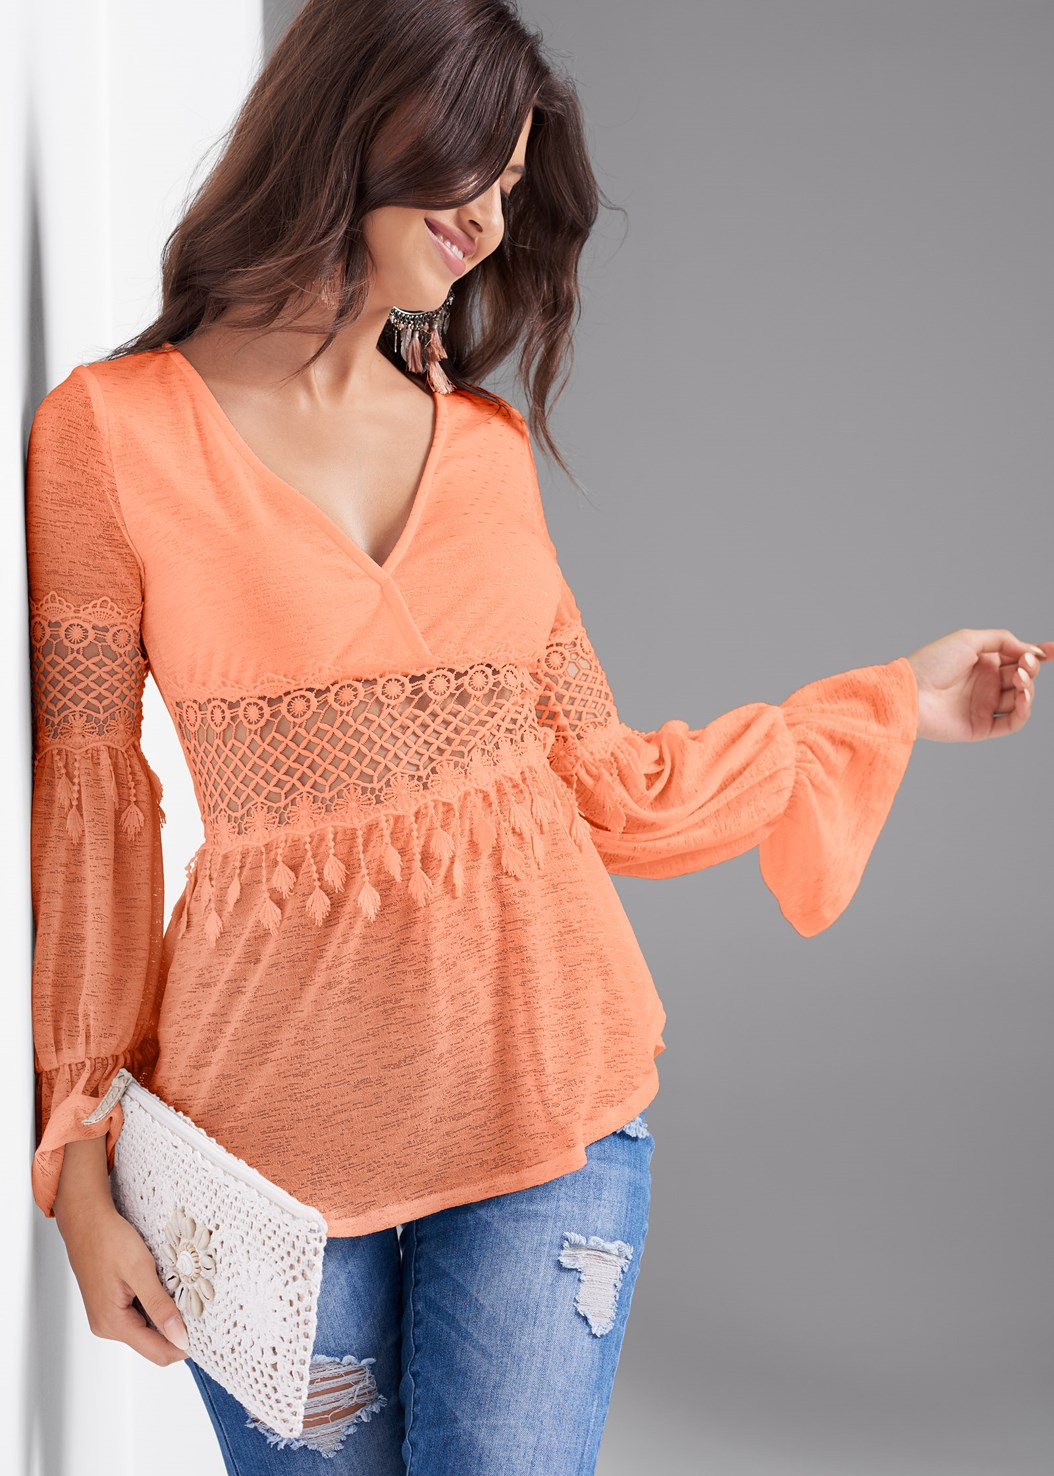 Crochet Bell Sleeve Top,Triangle Hem Jeans,Nubra Ultralite